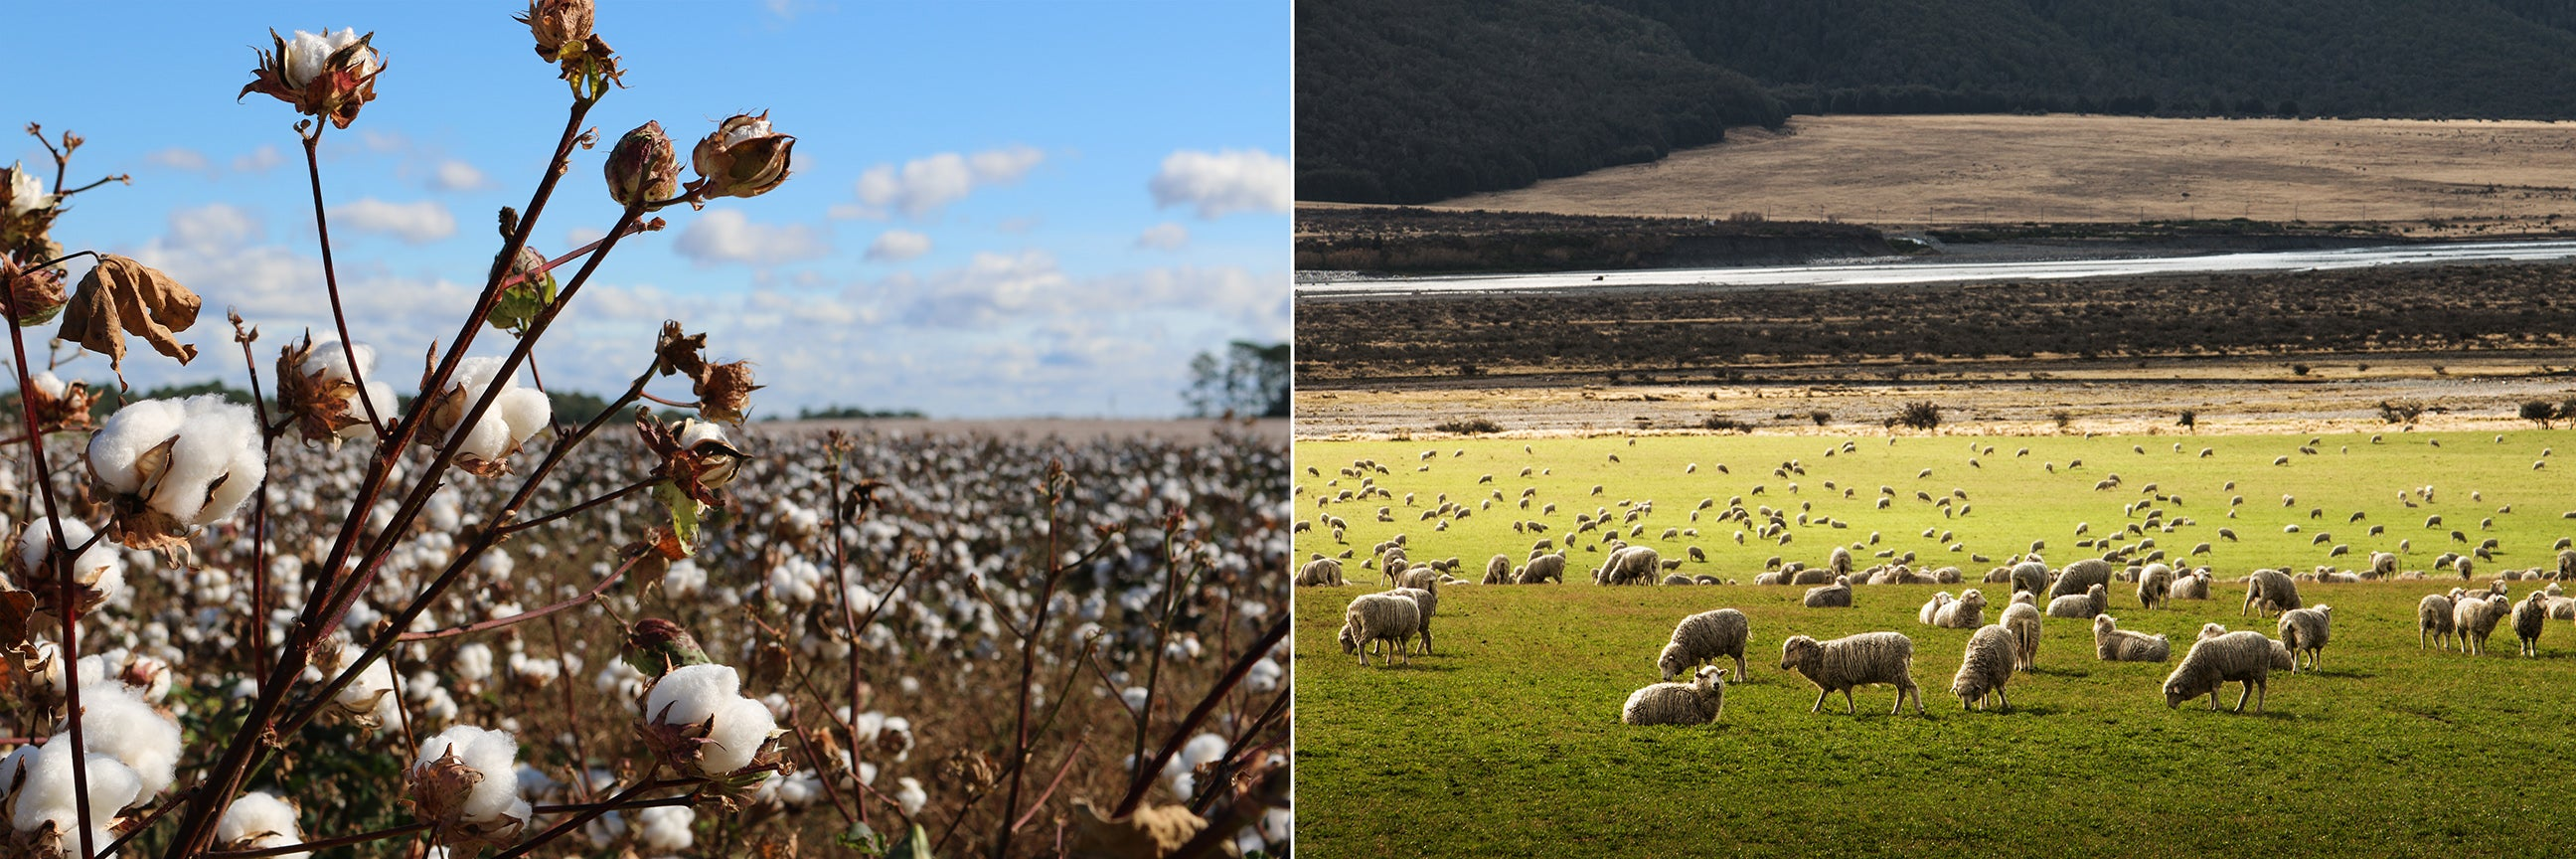 Natural fibers: cotton and sheep's wool